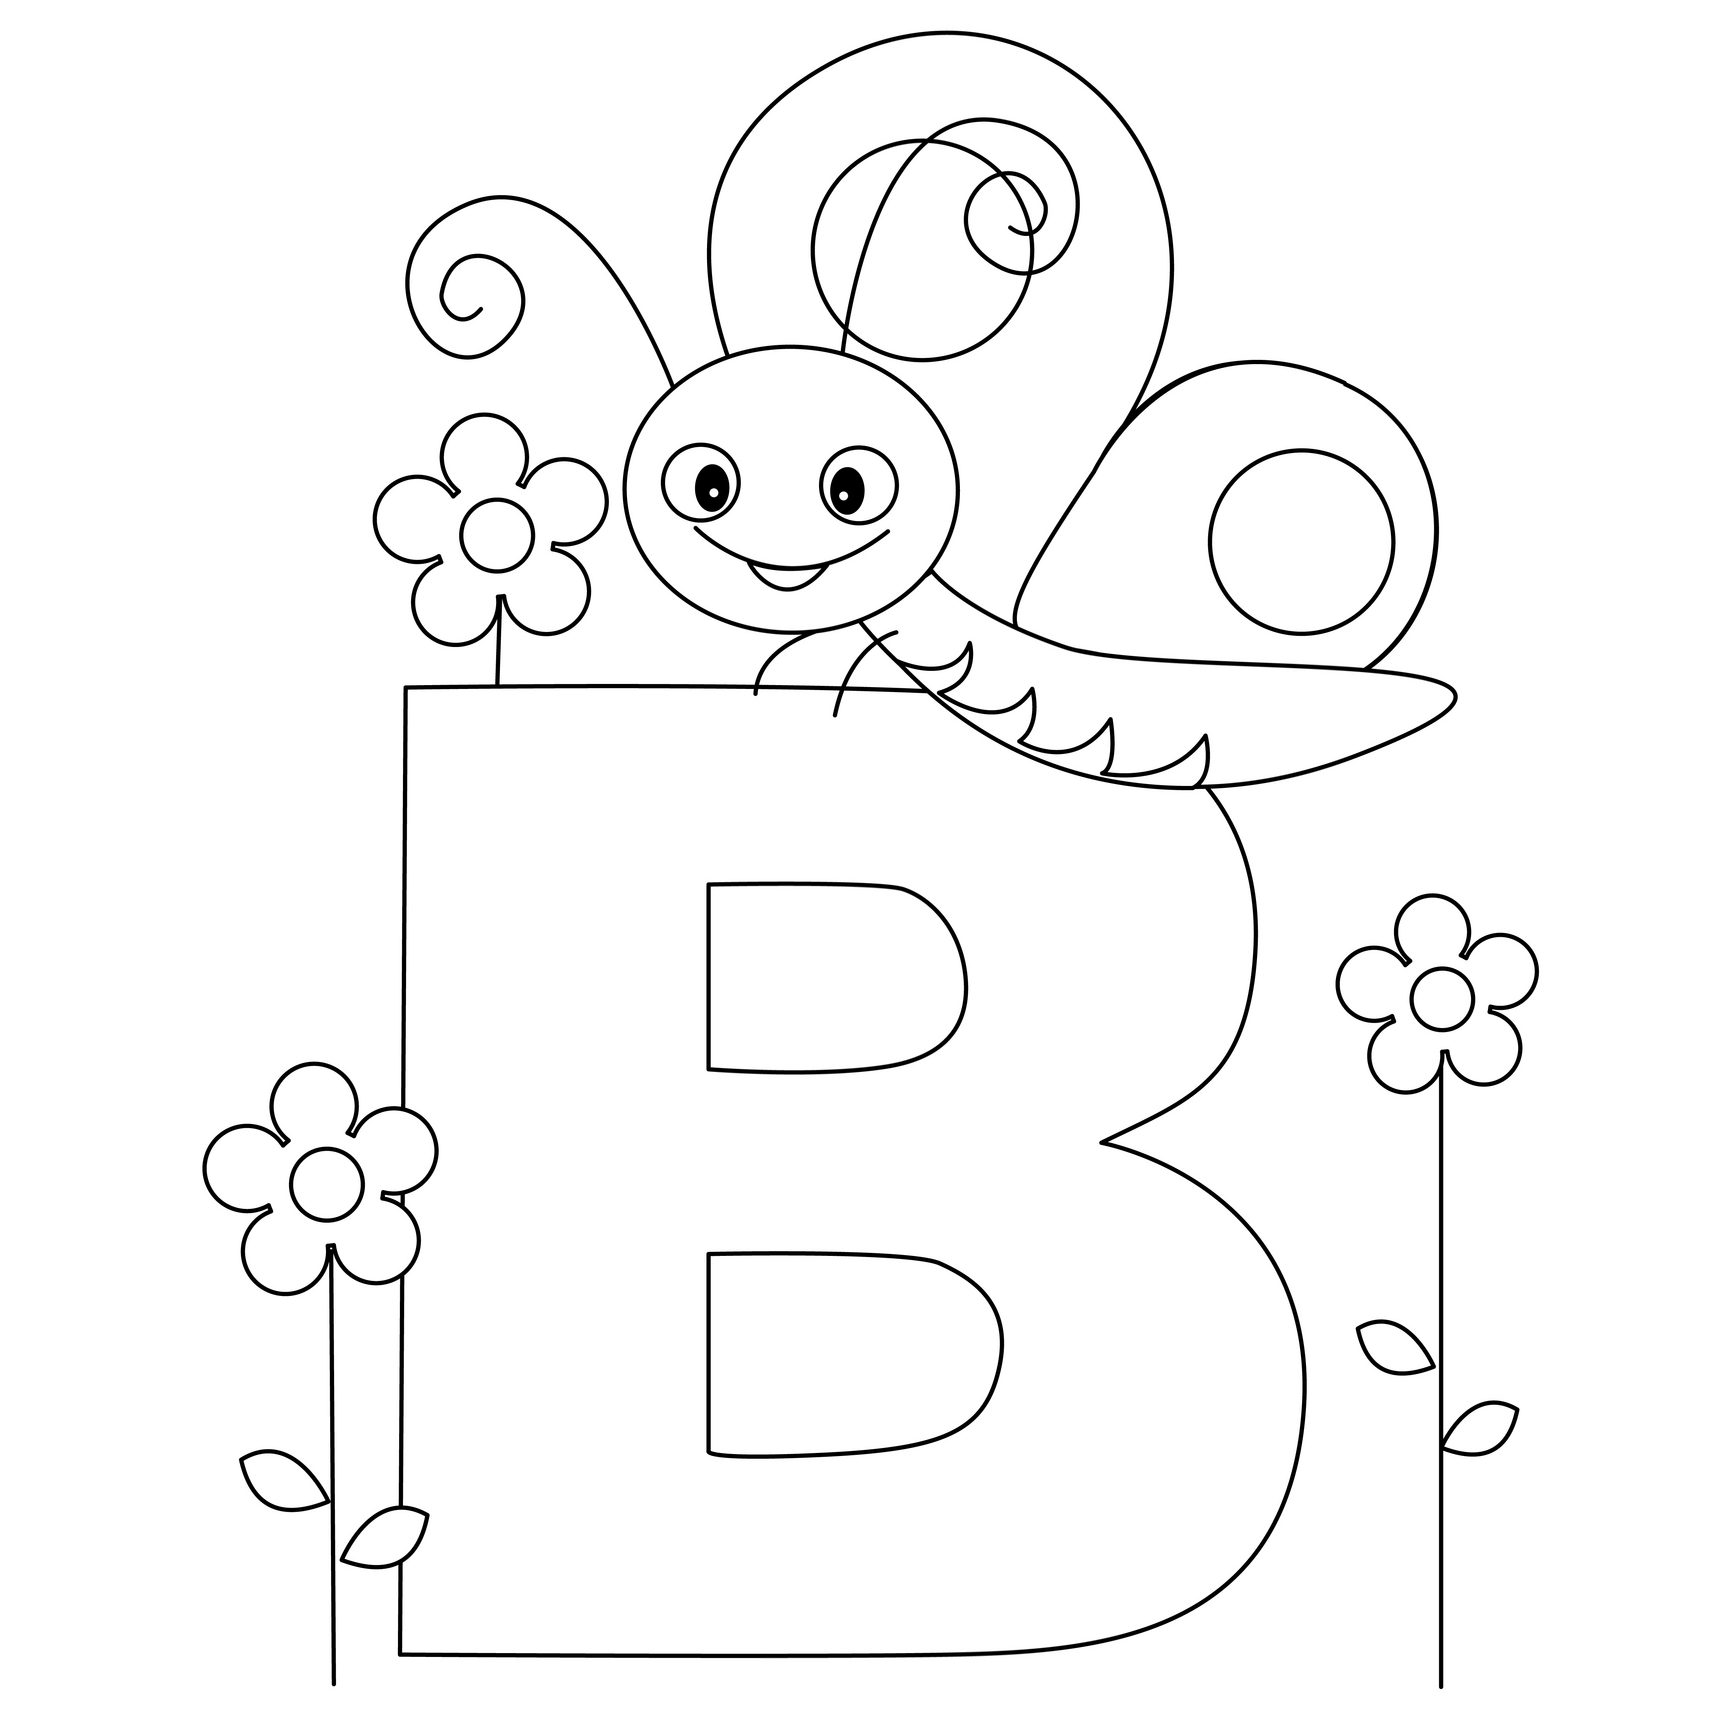 1732x1732 Coloring Pages With The Letter B Coloring Pages Letter B